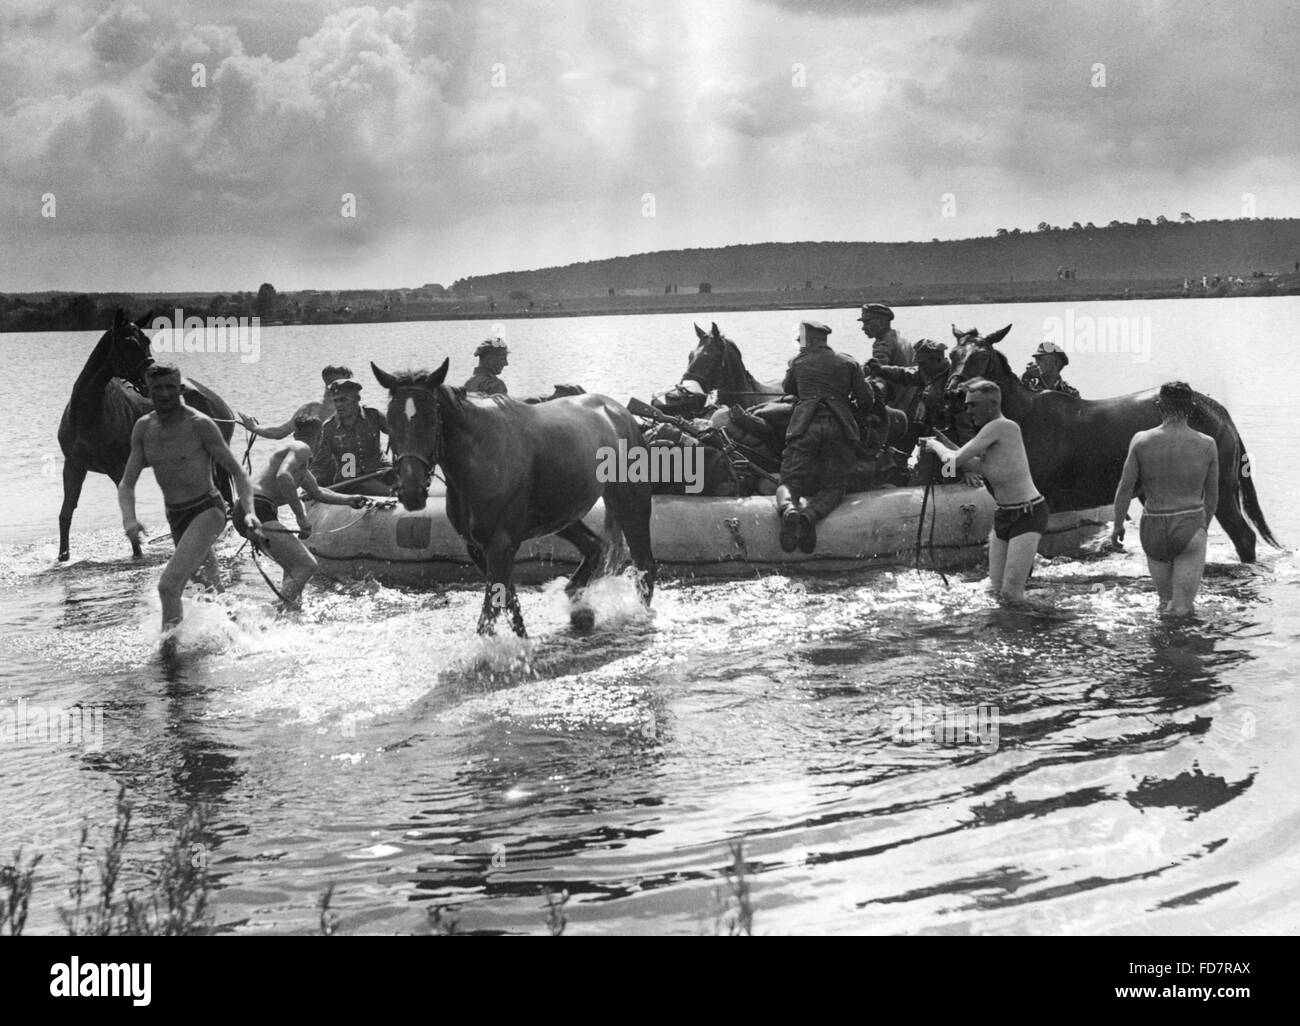 Cavalry of the Wehrmacht during an exercise on the Oder, 1935 - Stock Image